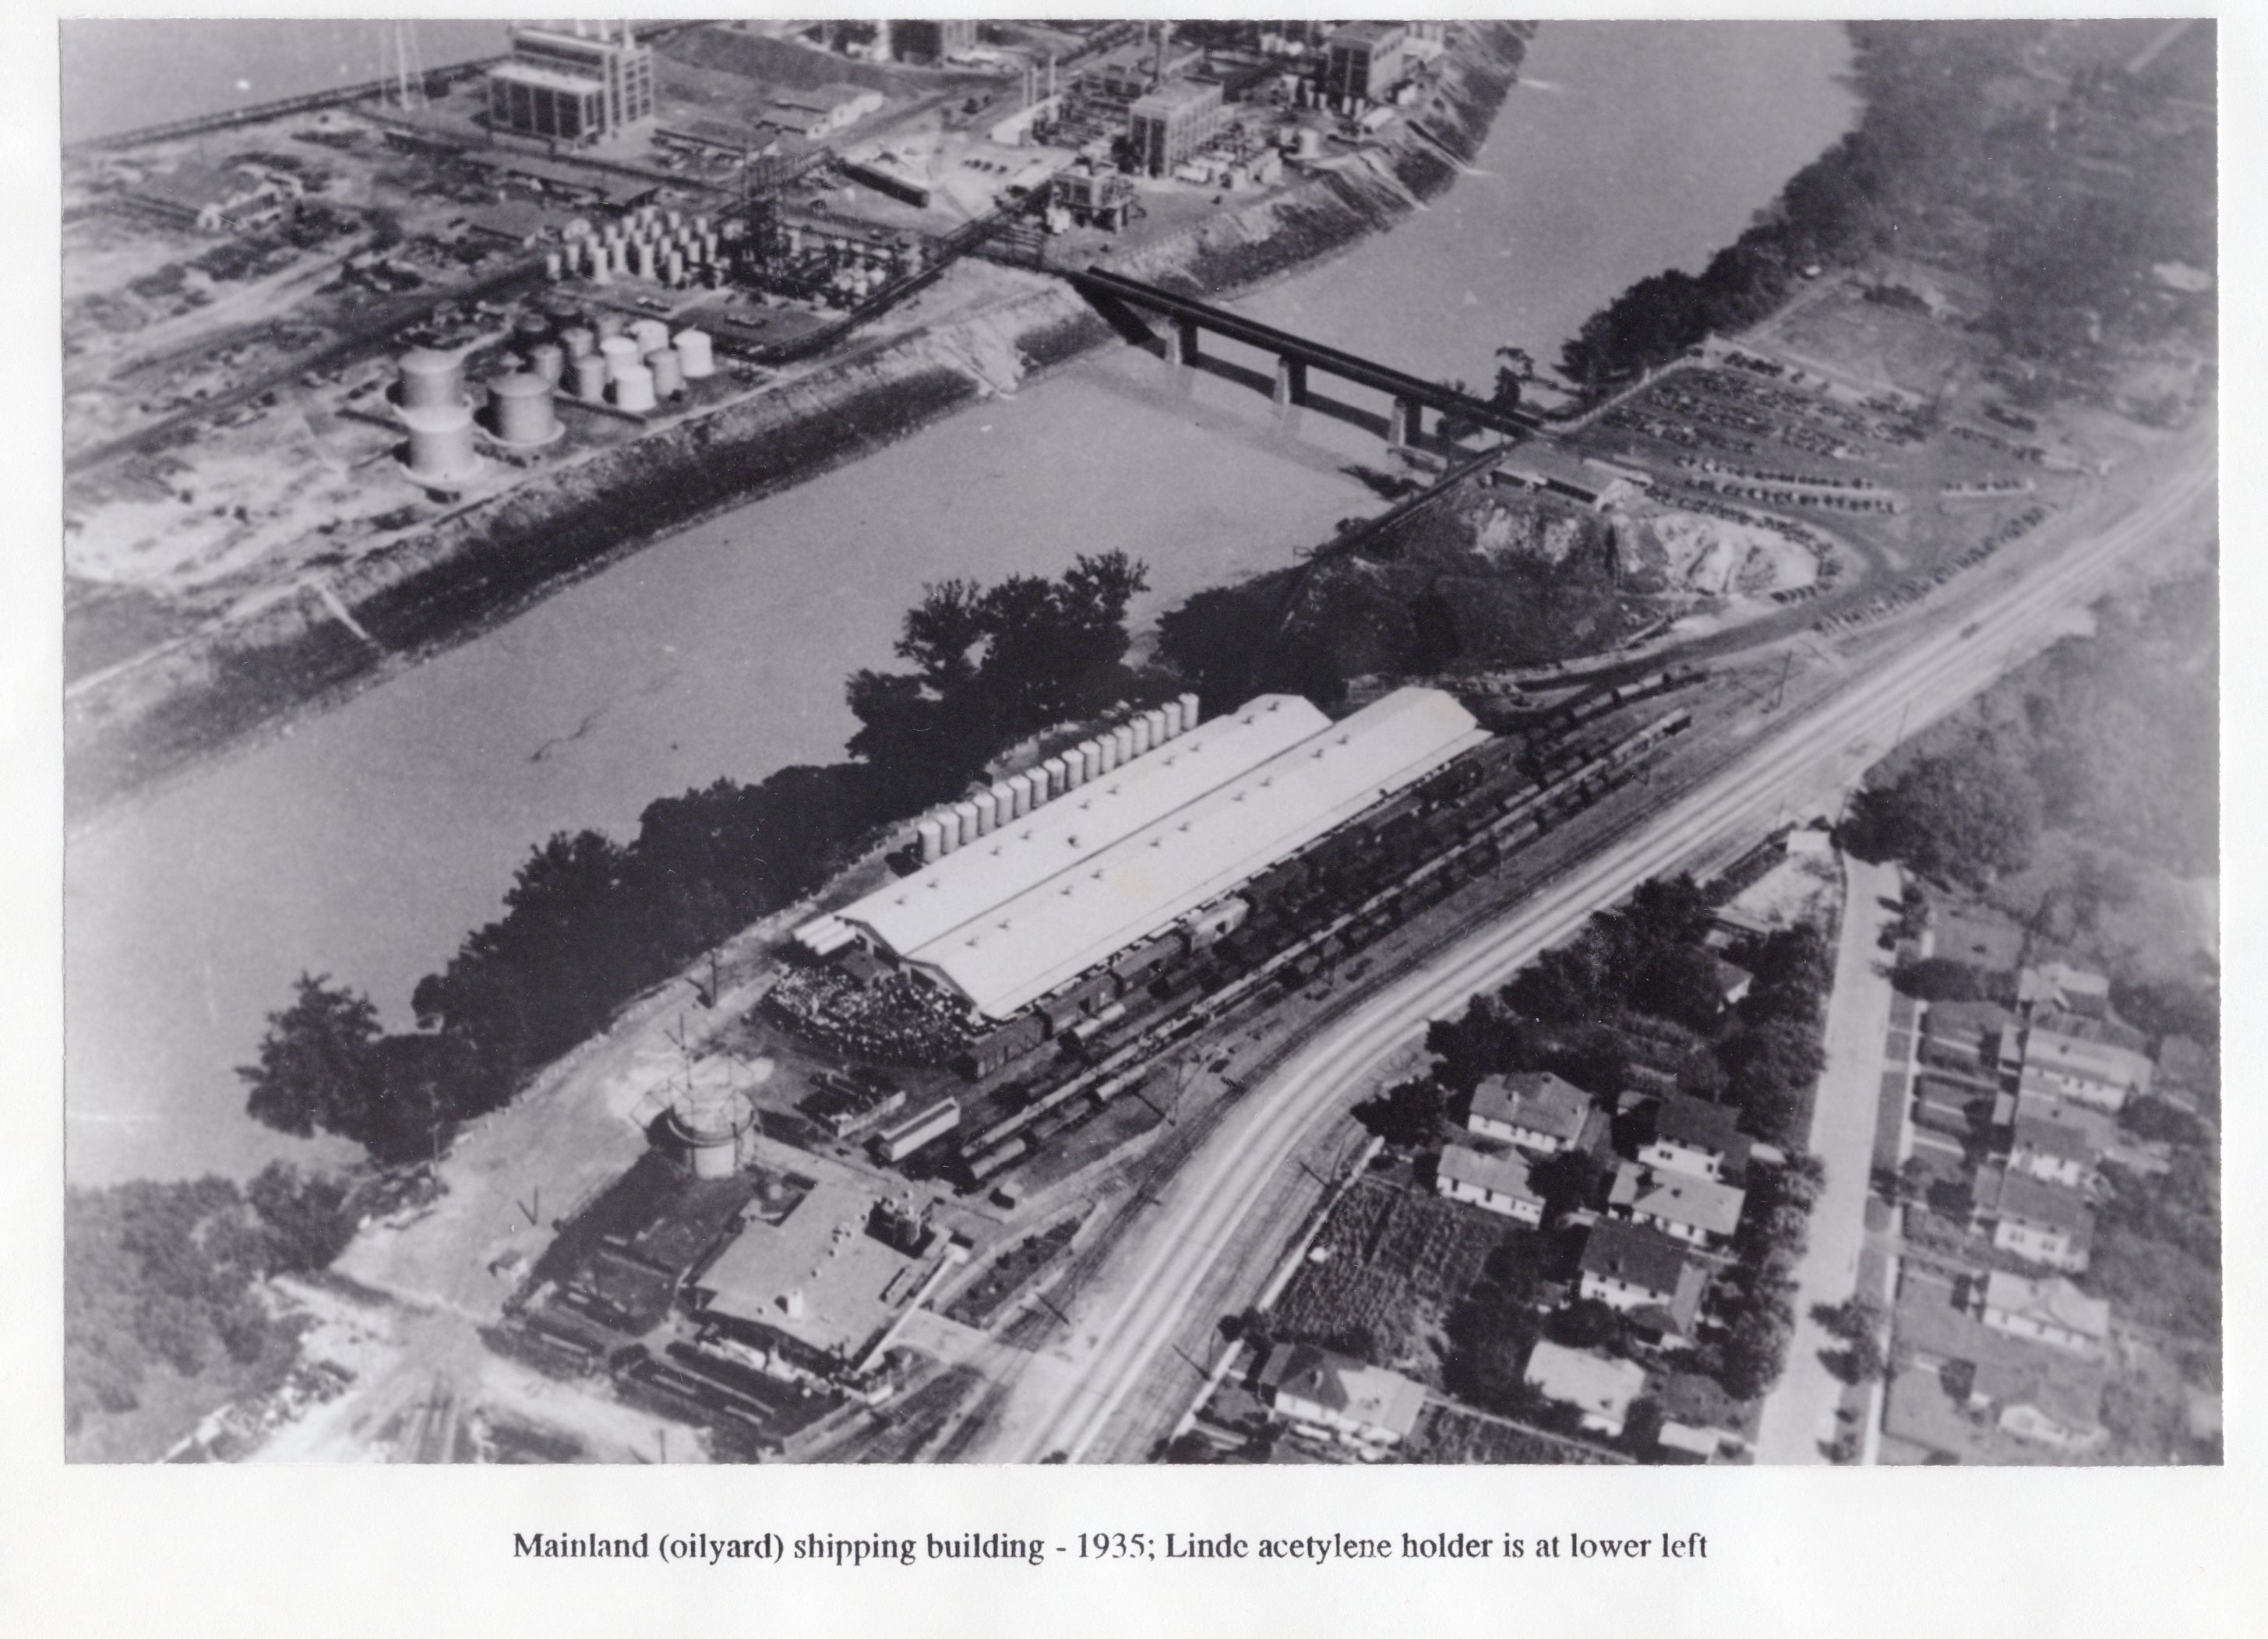 Carbide continues to grow: the Blaine Island bridge has been completed several years by the time of this 1935 photo, but the Carbide campus near where the bridge meets the mainland has not yet been developed (R. Hieronymus).